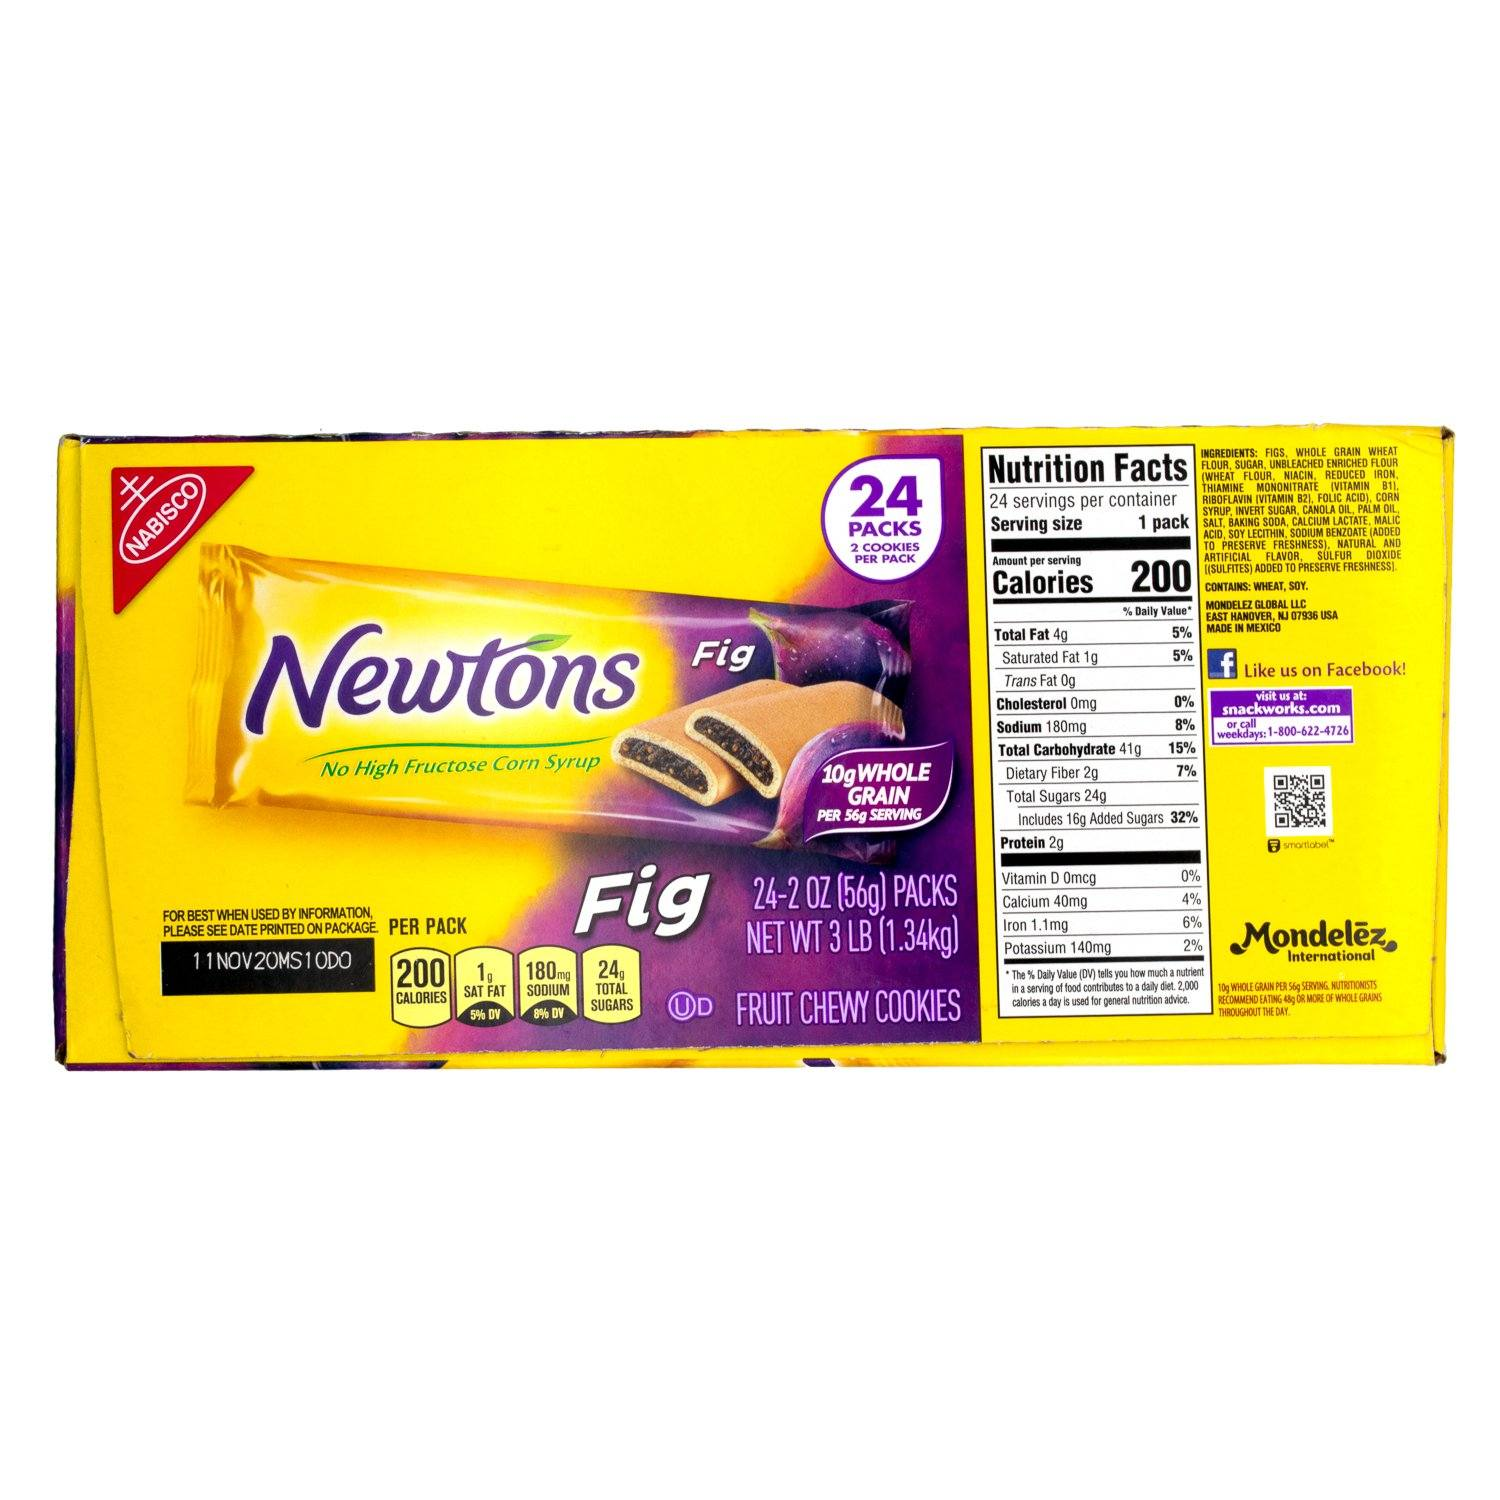 Newtons Soft and Chewy Cookies Newtons